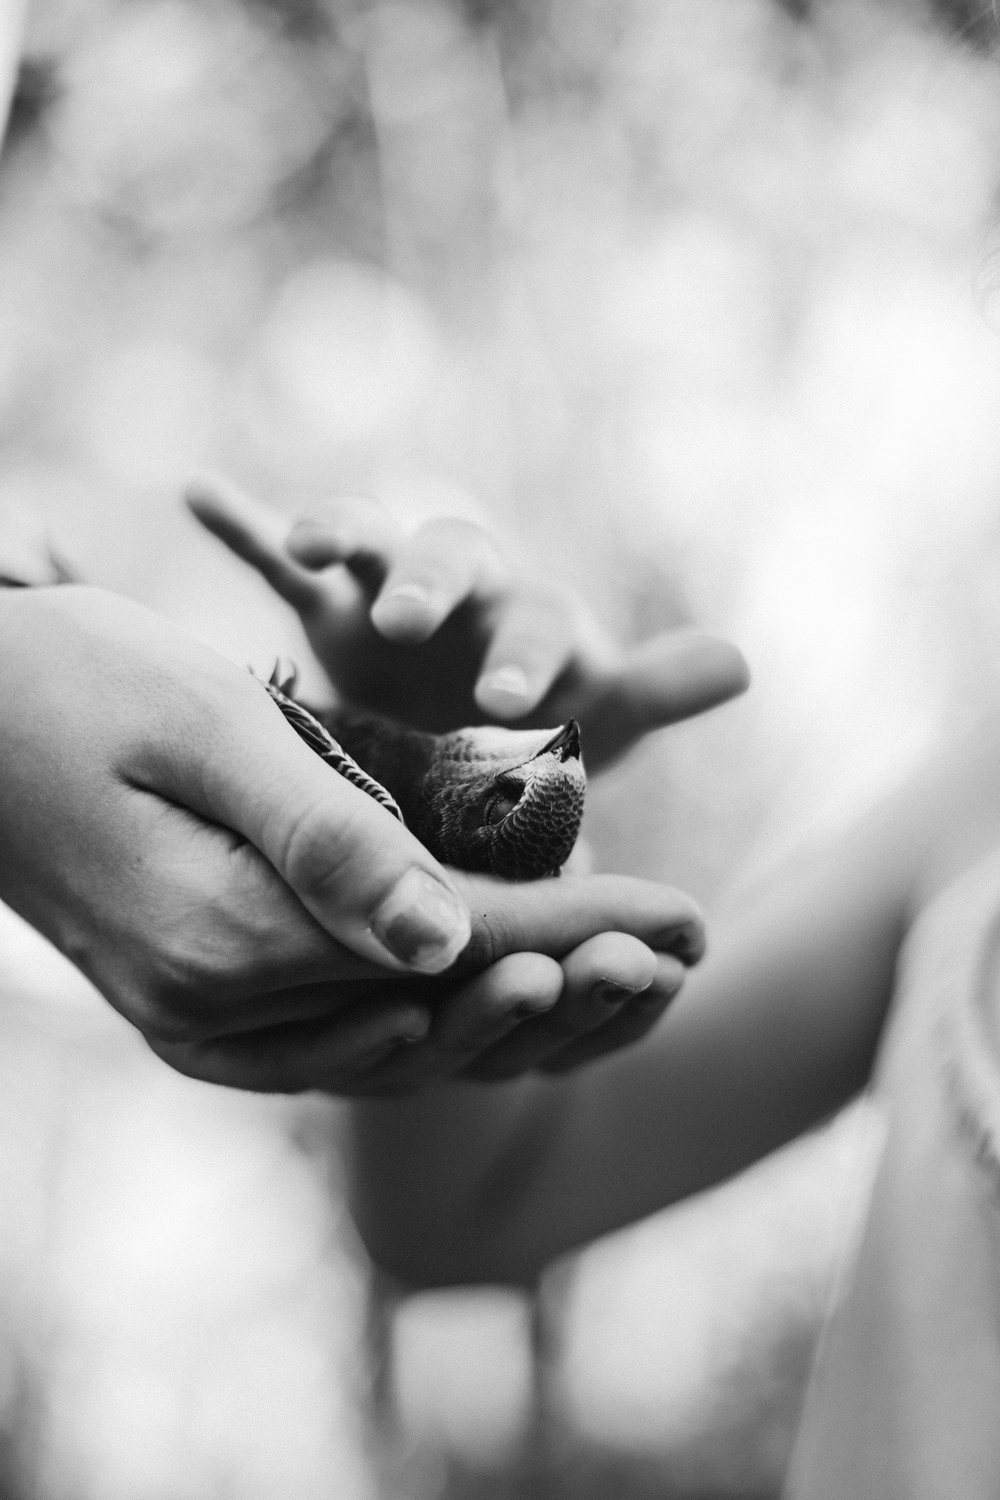 A mother's hand holds a wounded bird while the a child stokes the bird's neck